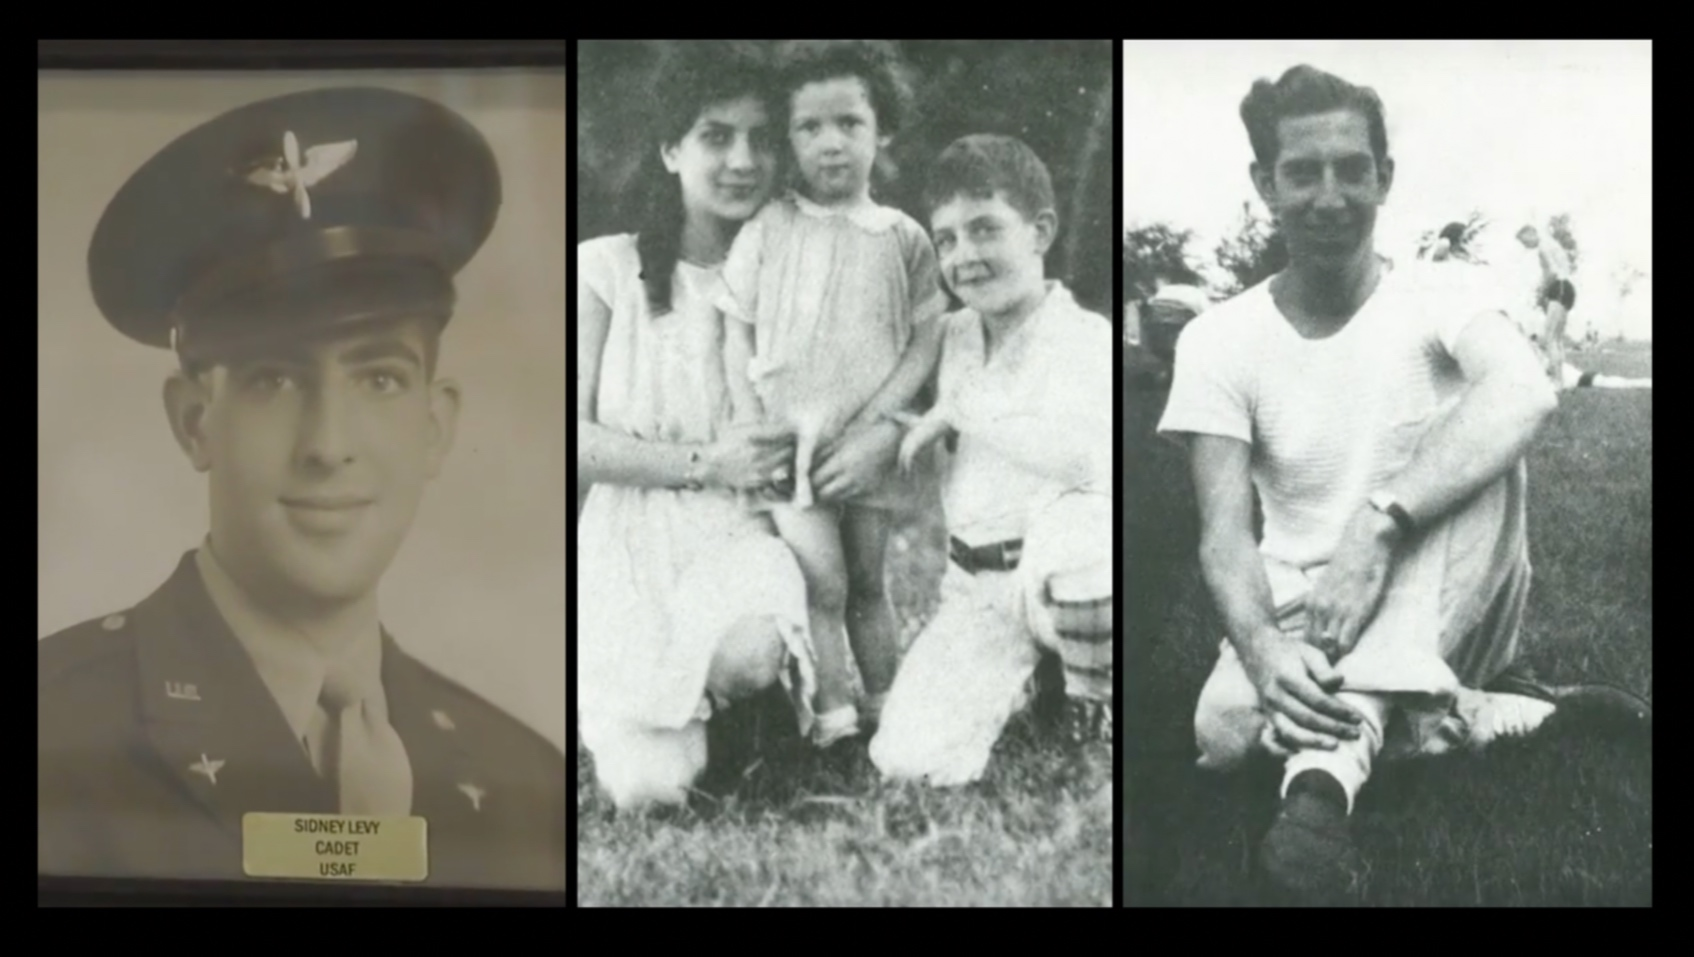 Sidney Levy as a USAF air cadet (left), with his mother and sister (middle), and as a young man